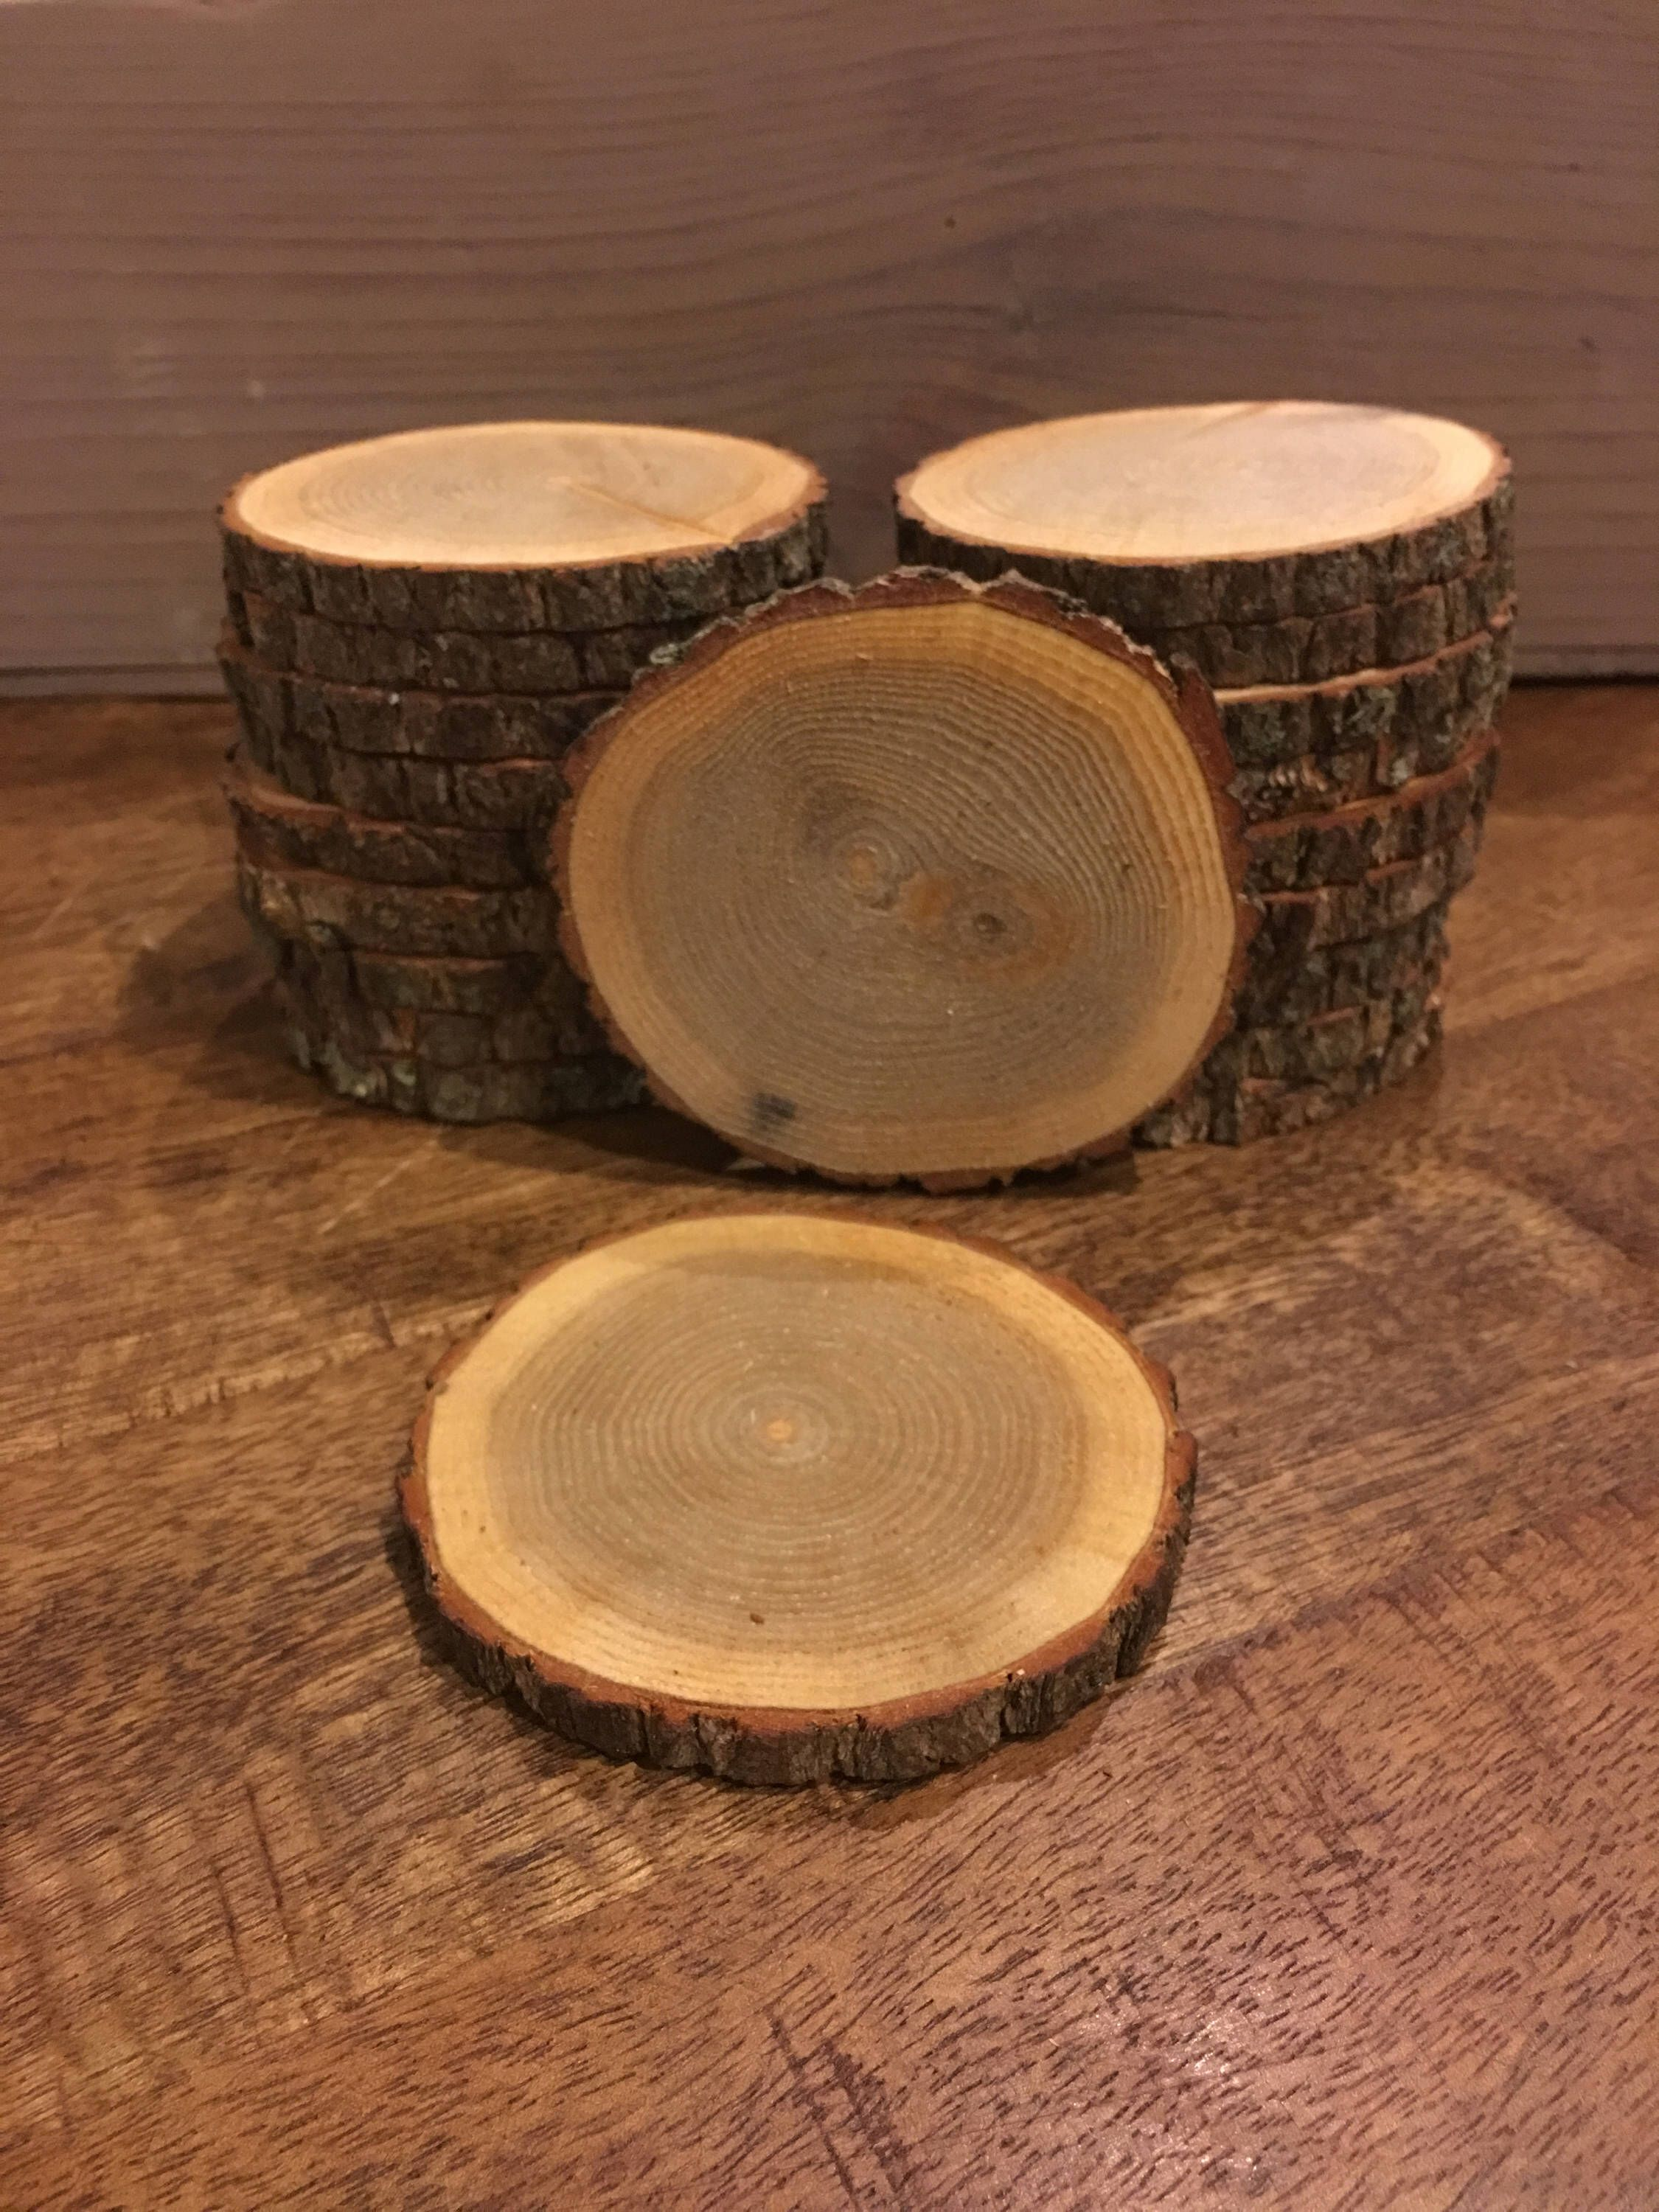 Excited To Share The Latest Addition To My Etsy Shop Wood Slices Mini Wood Slices Bulk Wood Slices Wood Wood Slice Ornament Rustic Wedding Decor Wood Slices